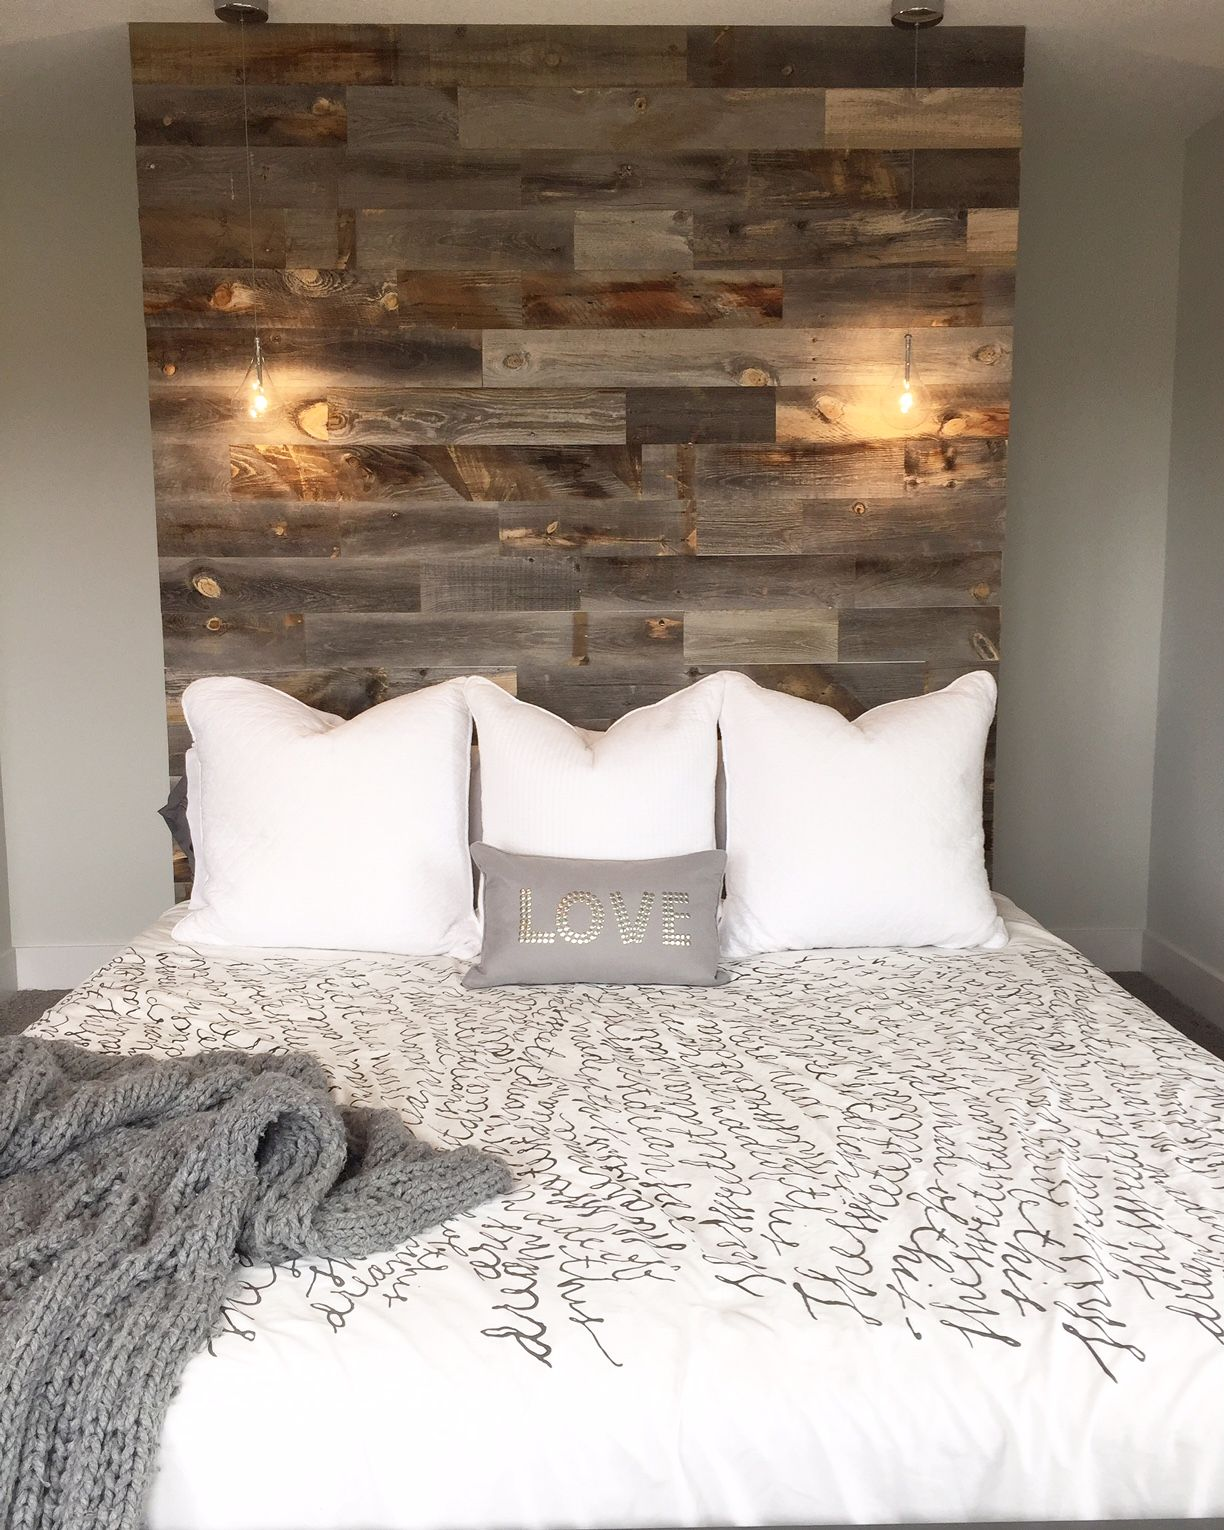 jenny pictures rustic plans headboards ideas and steffens wood headboard king built size wooden weathered pallet furniture white reclaimed hobick barn we diy medium queen of